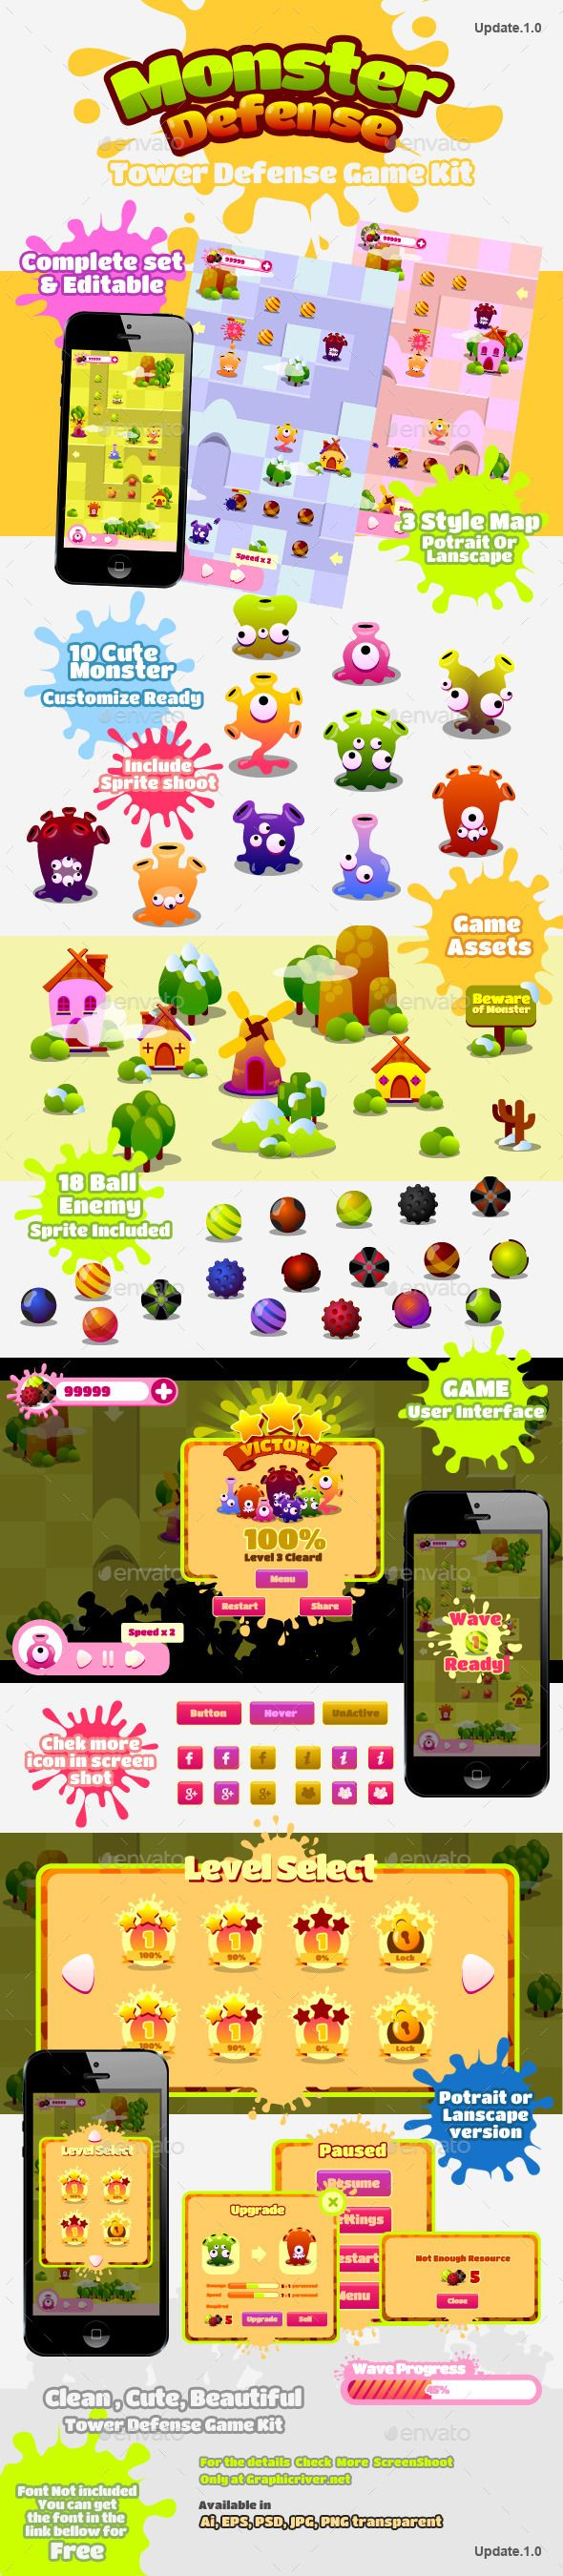 Tower Defense Kit - Game #Kits #Game #Assets | Download http://graphicriver.net/item/tower-defense-kit/8932584?ref=sinzo